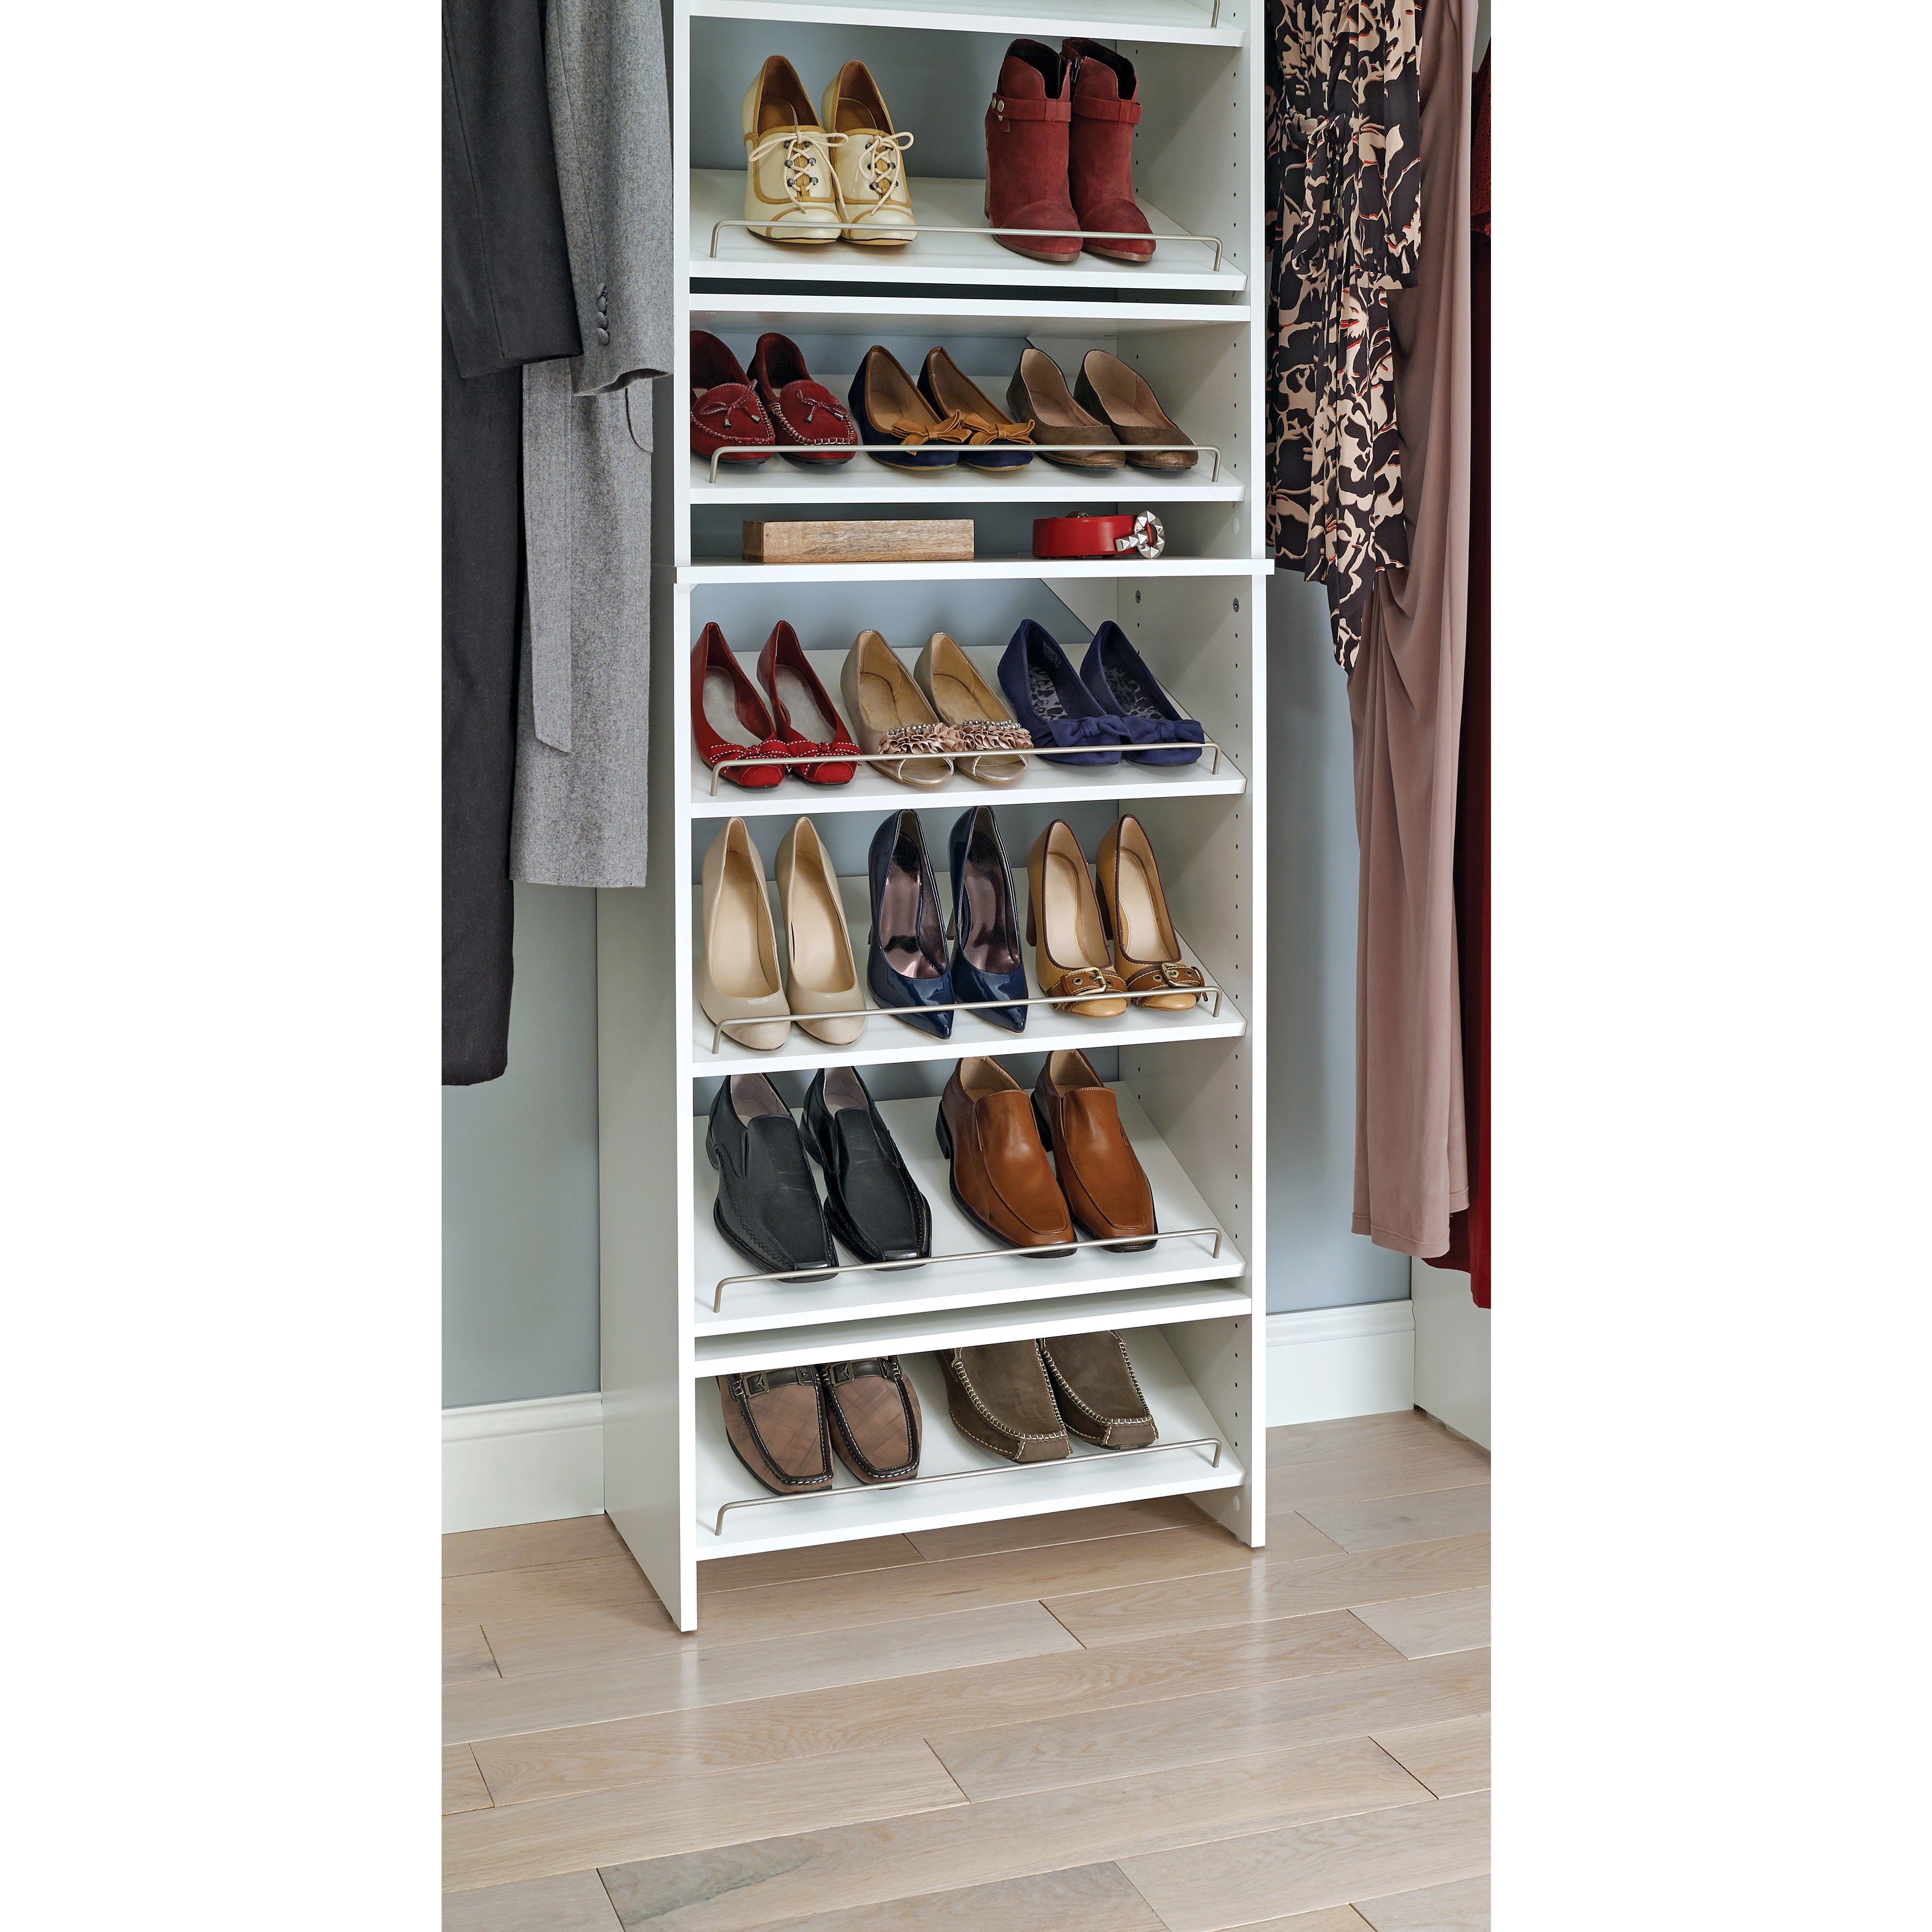 Merveilleux Shop ClosetMaid SuiteSymphony 25 In. Angled Shoe Shelves   Free Shipping On  Orders Over $45   Overstock.com   10470299